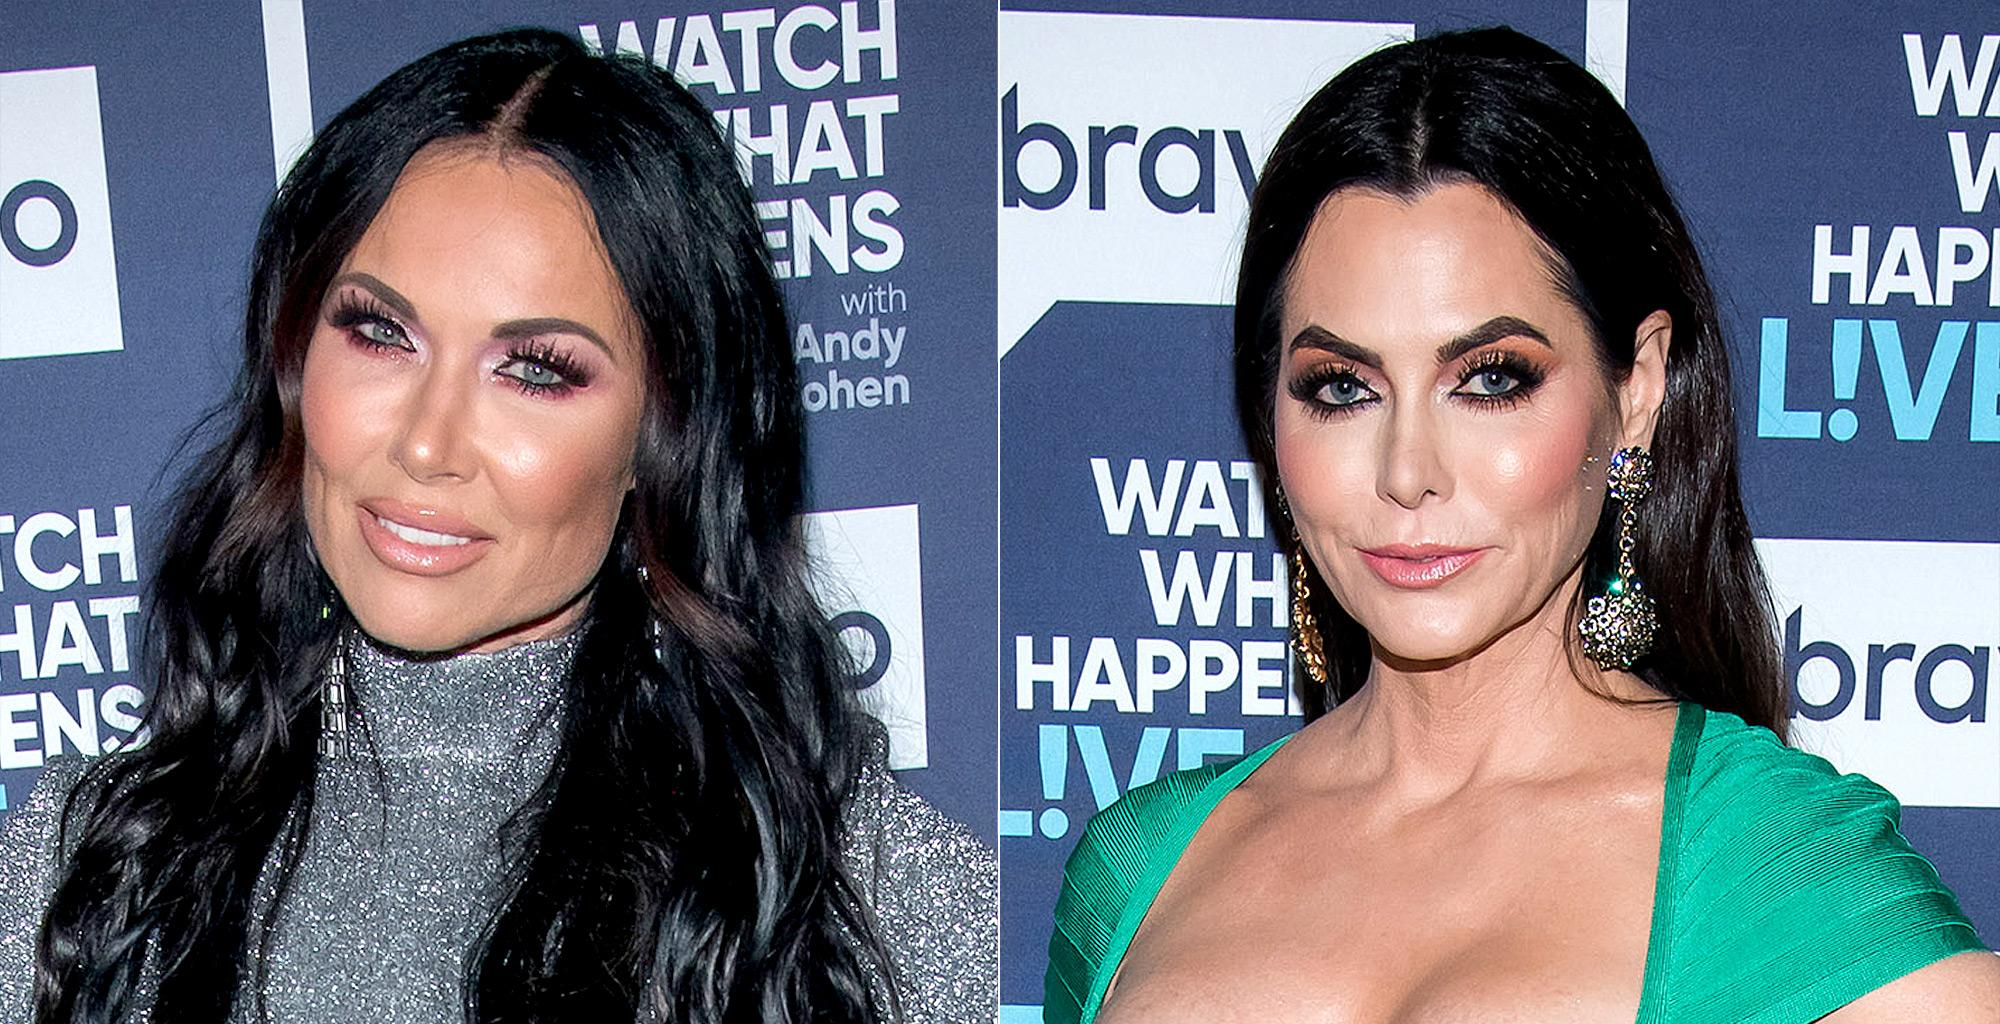 RHOD Leanne Locken Calls Co-Star Kary Brittingham A 'Chirpy Mexican' -- Fans Slam Her For Being Racist And D'andra Simmons Comments